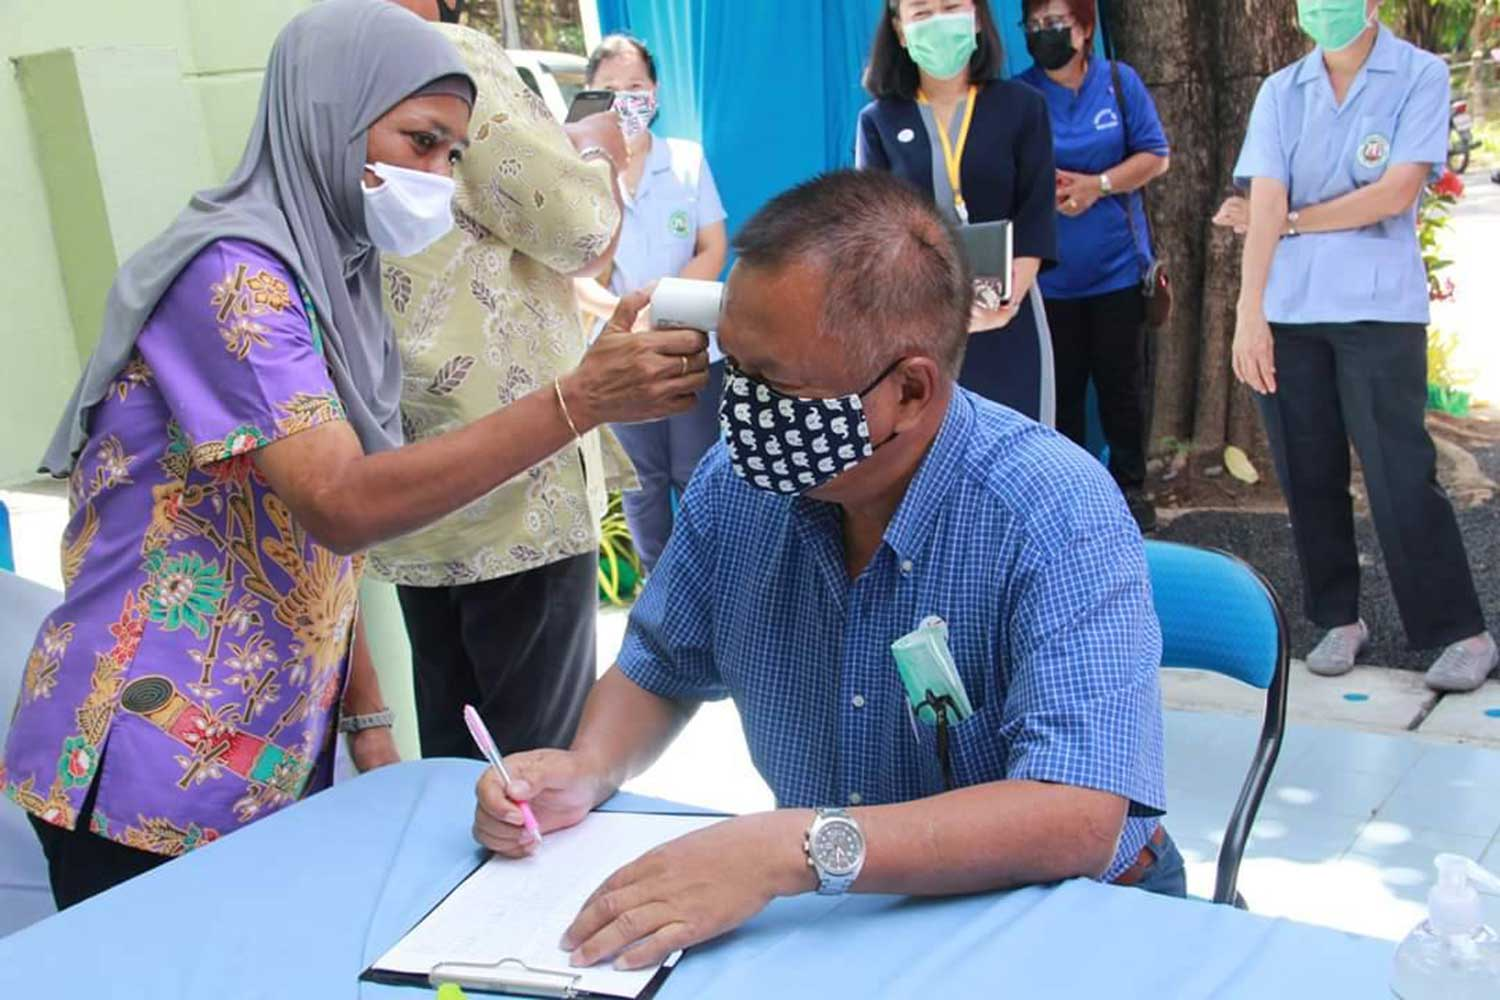 An official checks the body temperature of a man in Phuket. The island province on Thursday reported five new coronavirus infections, bringing the total to 34. (Photo: Achadtaya Chuenniran)